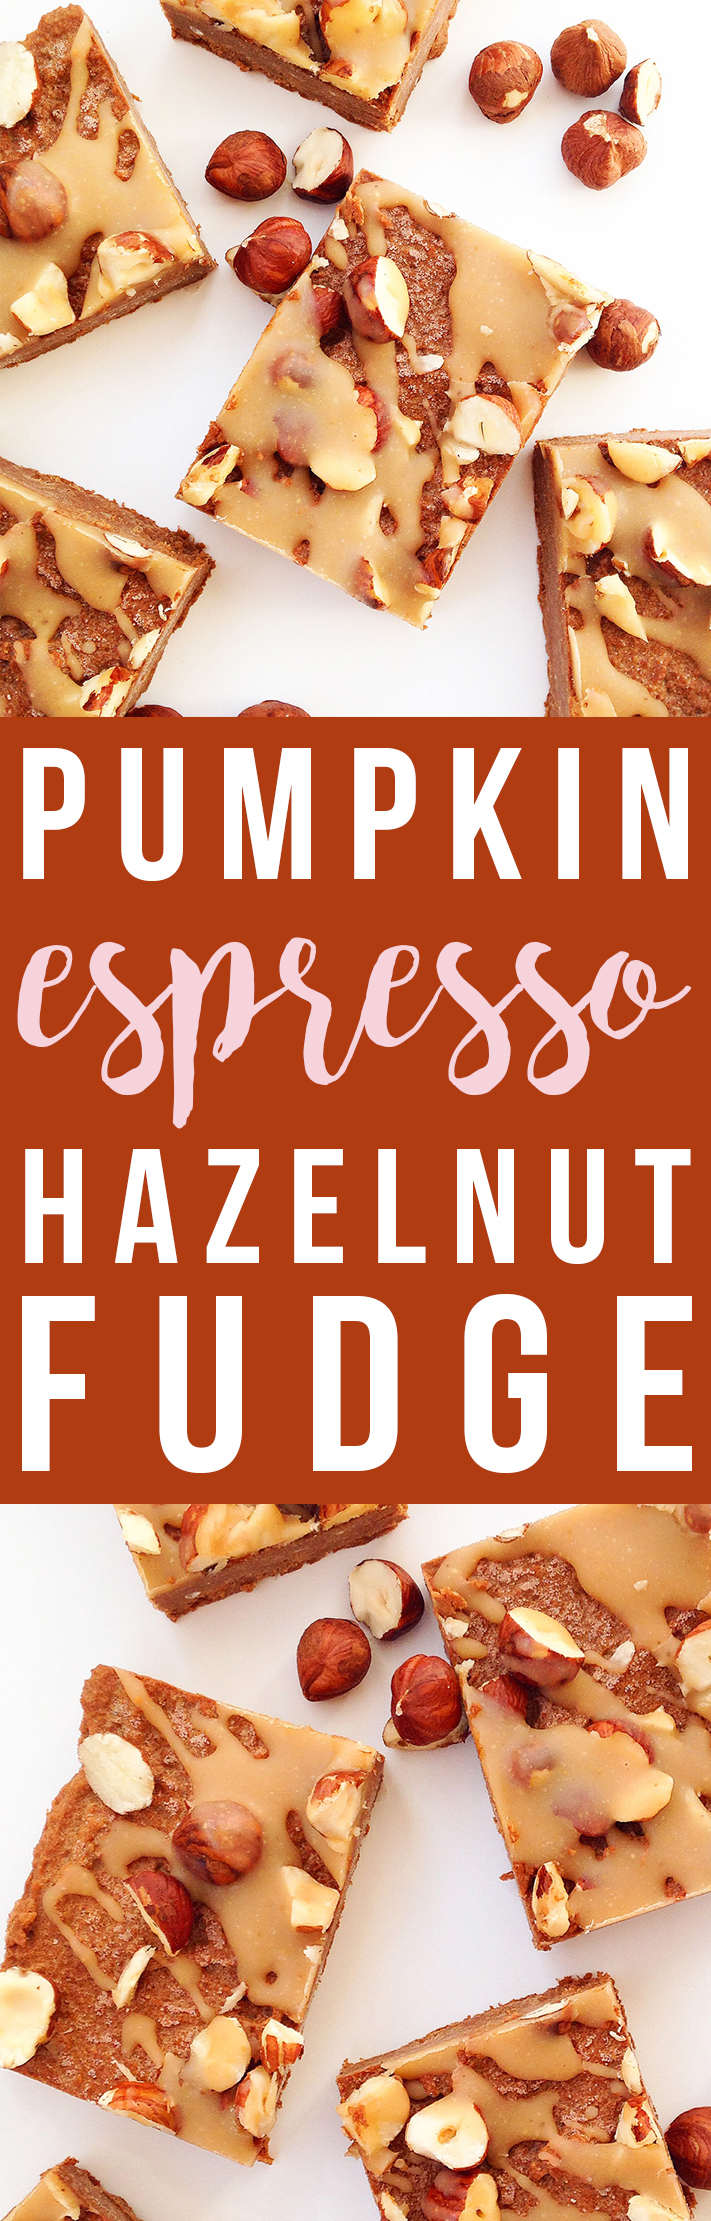 Pumpkin Espresso Hazelnut Fudge (Vegan, Paleo, Raw) | Fresh Planet Flavor